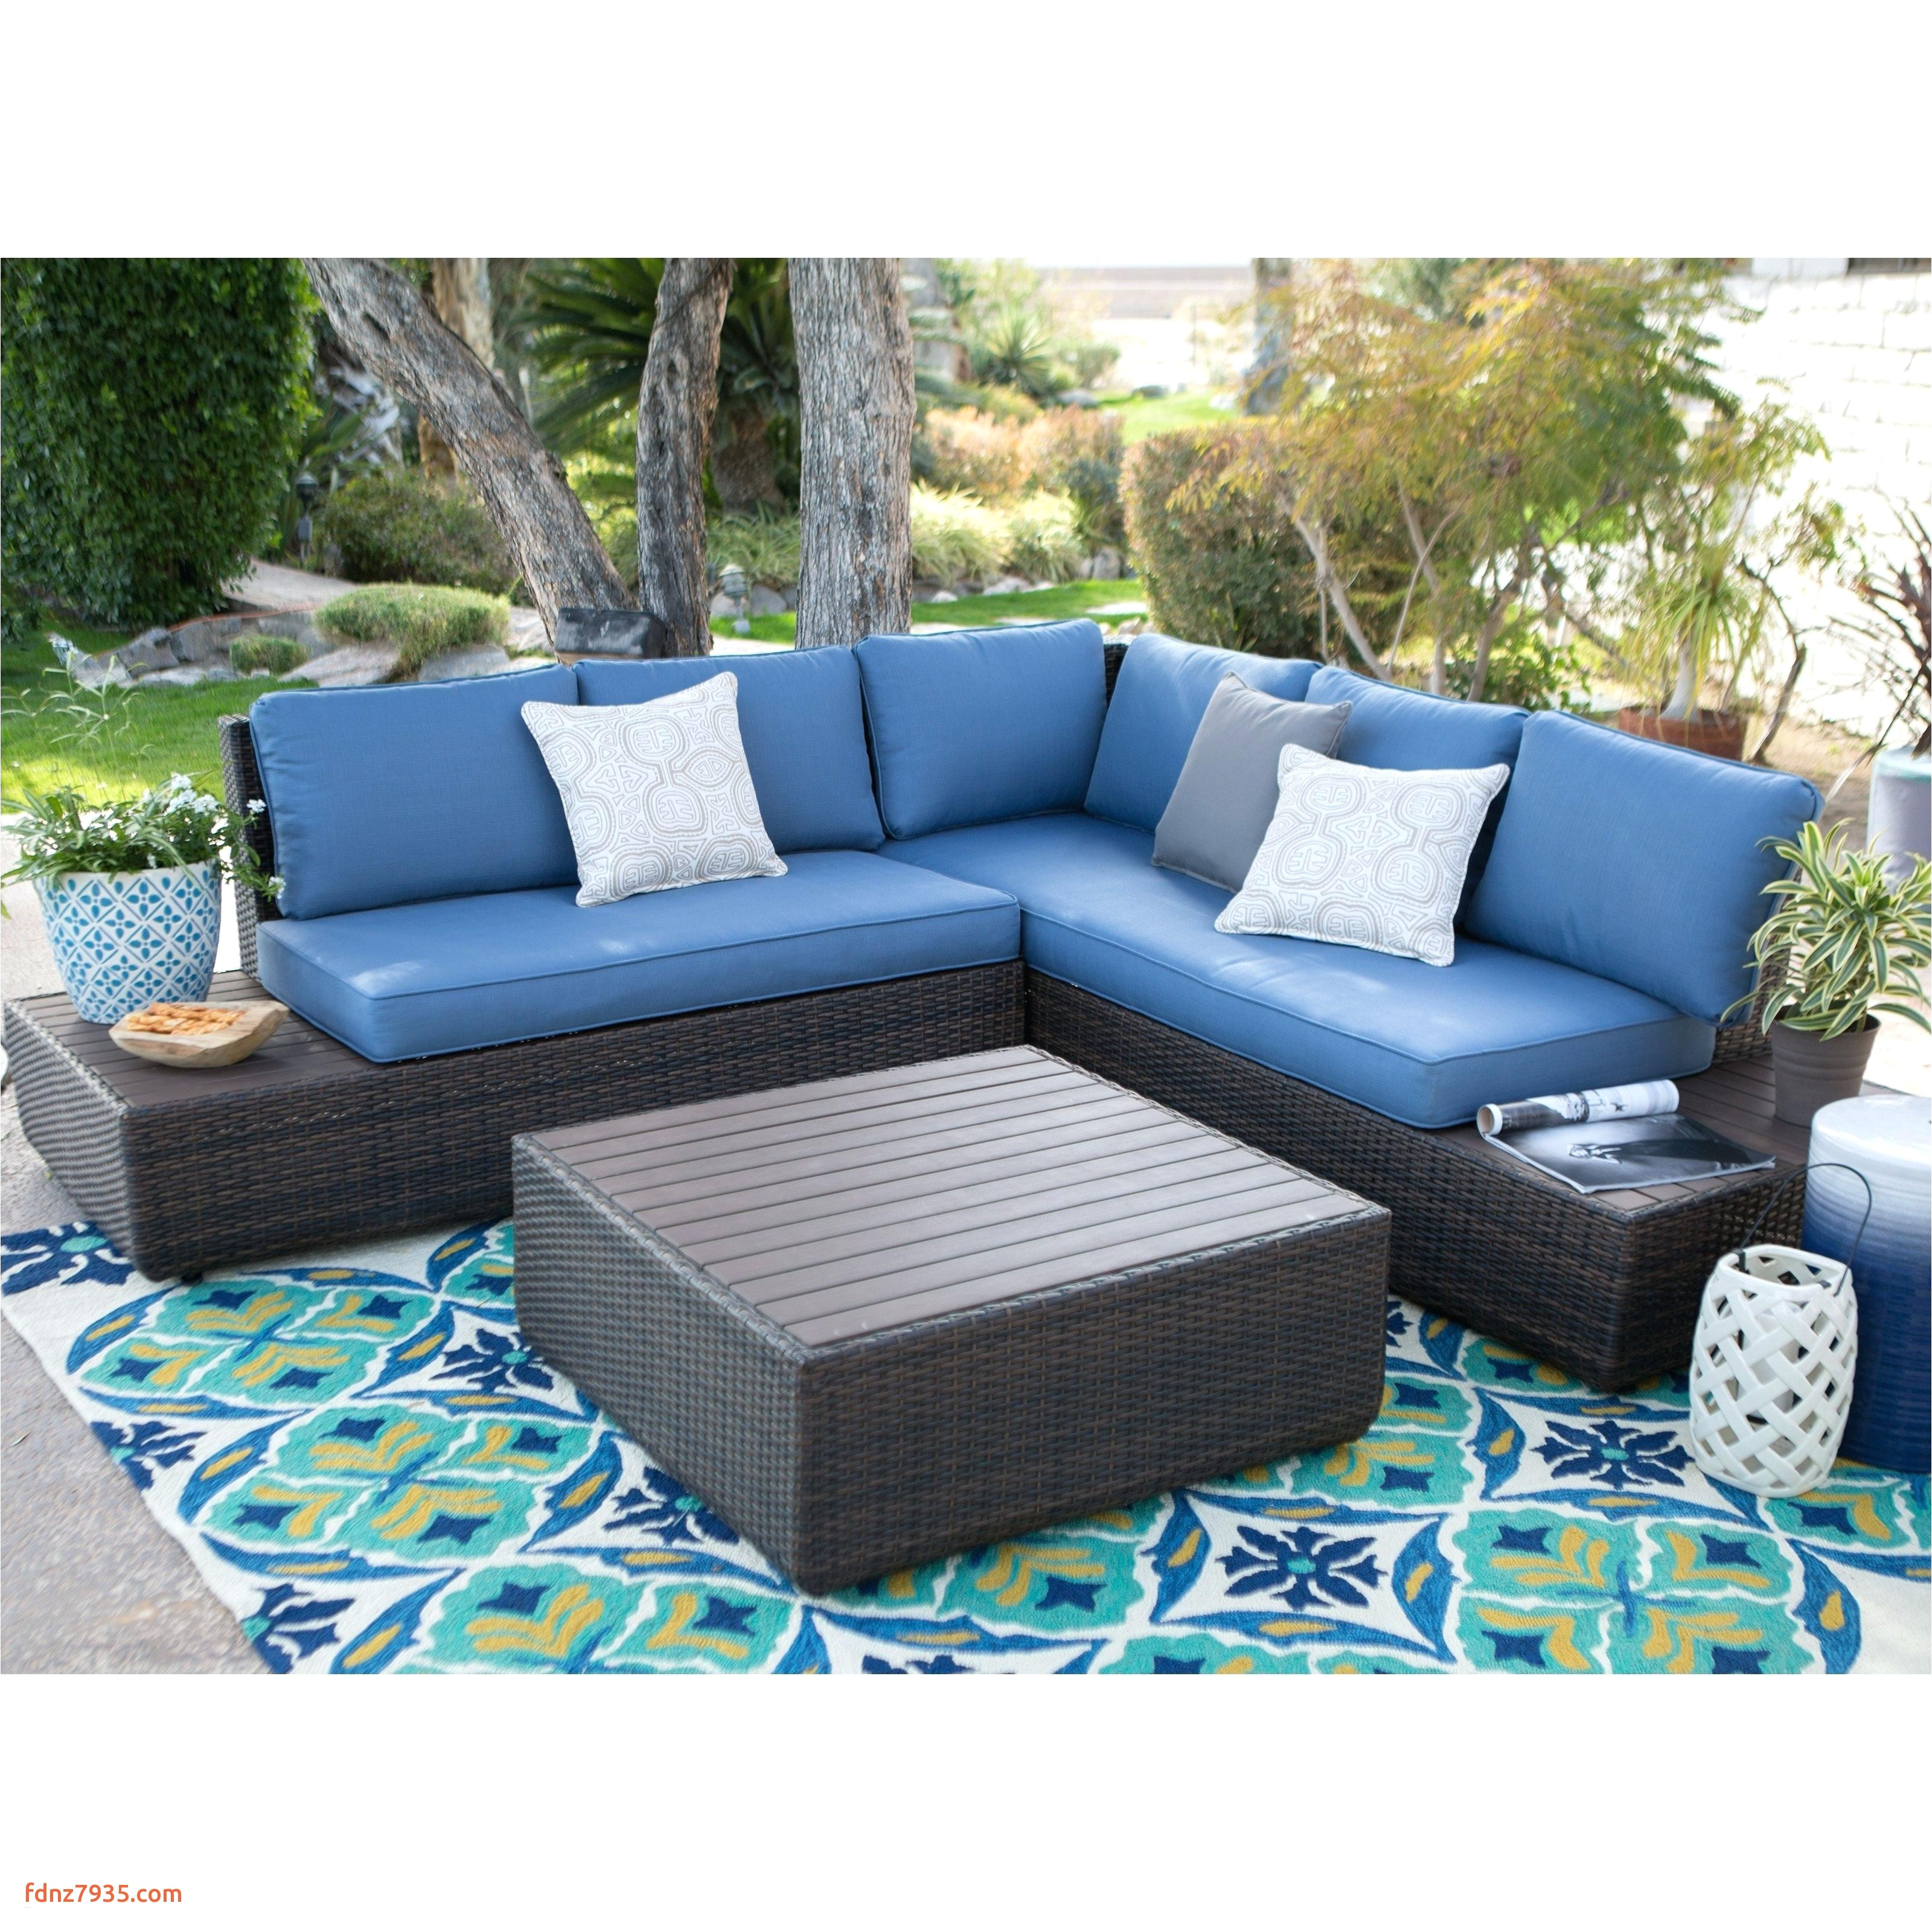 outdoor patio furniture covers lovely patio furniture cover best wicker outdoor sofa 0d patio chairs